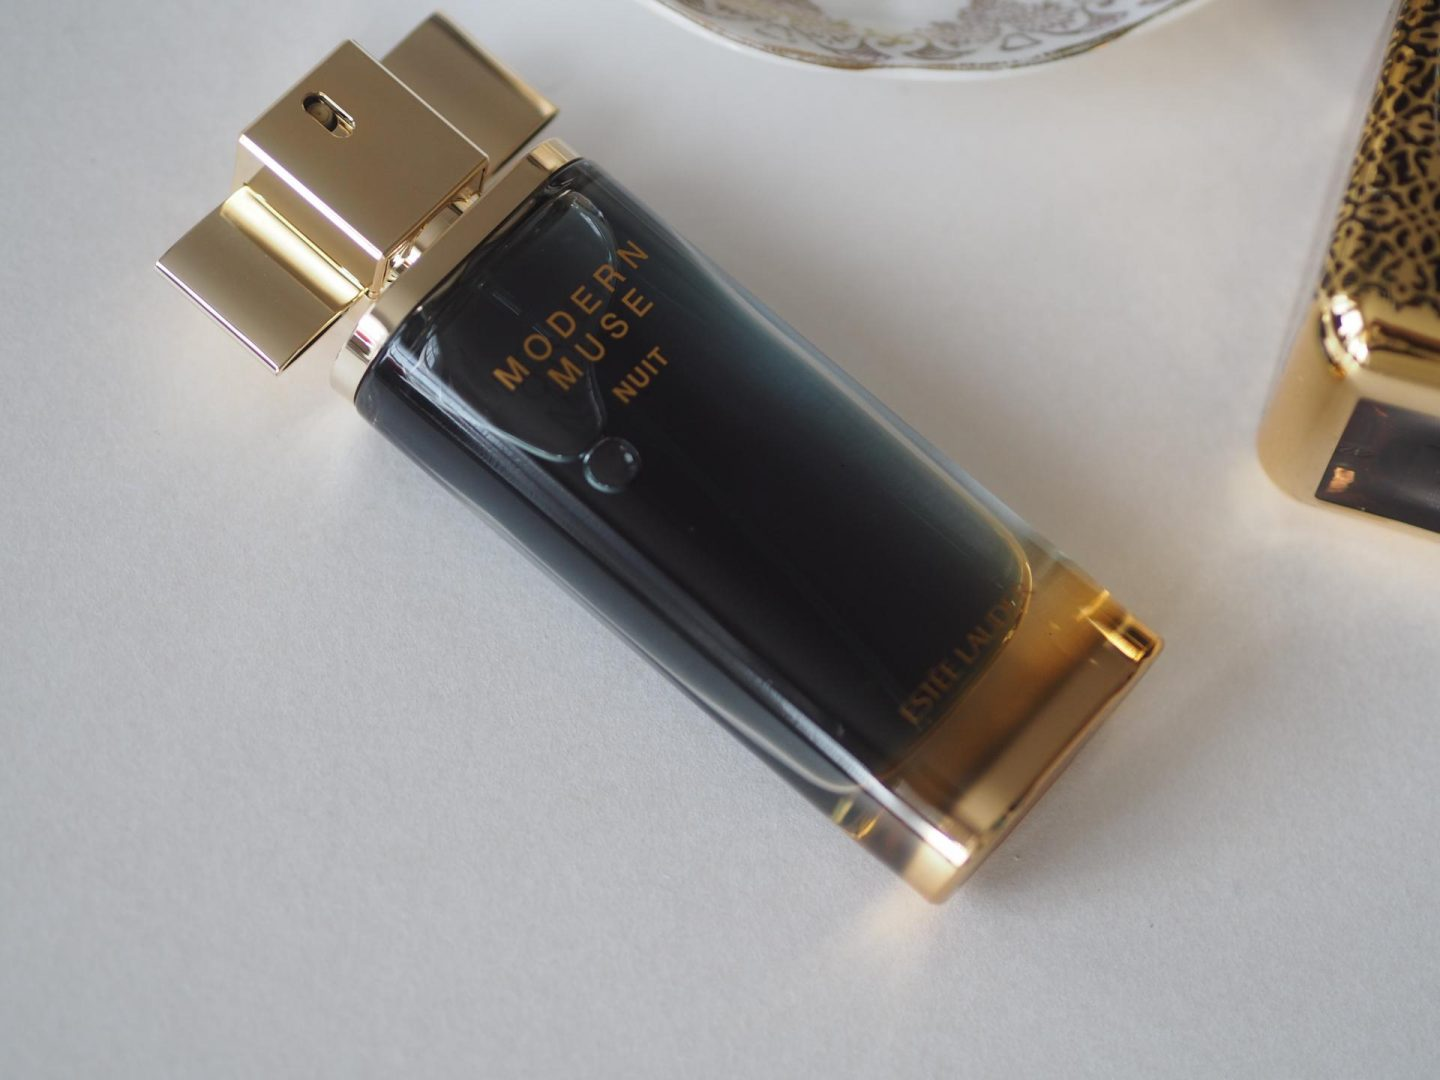 Valentine's Day gift ideas for her and Estee Lauder Modern Muse Nuit